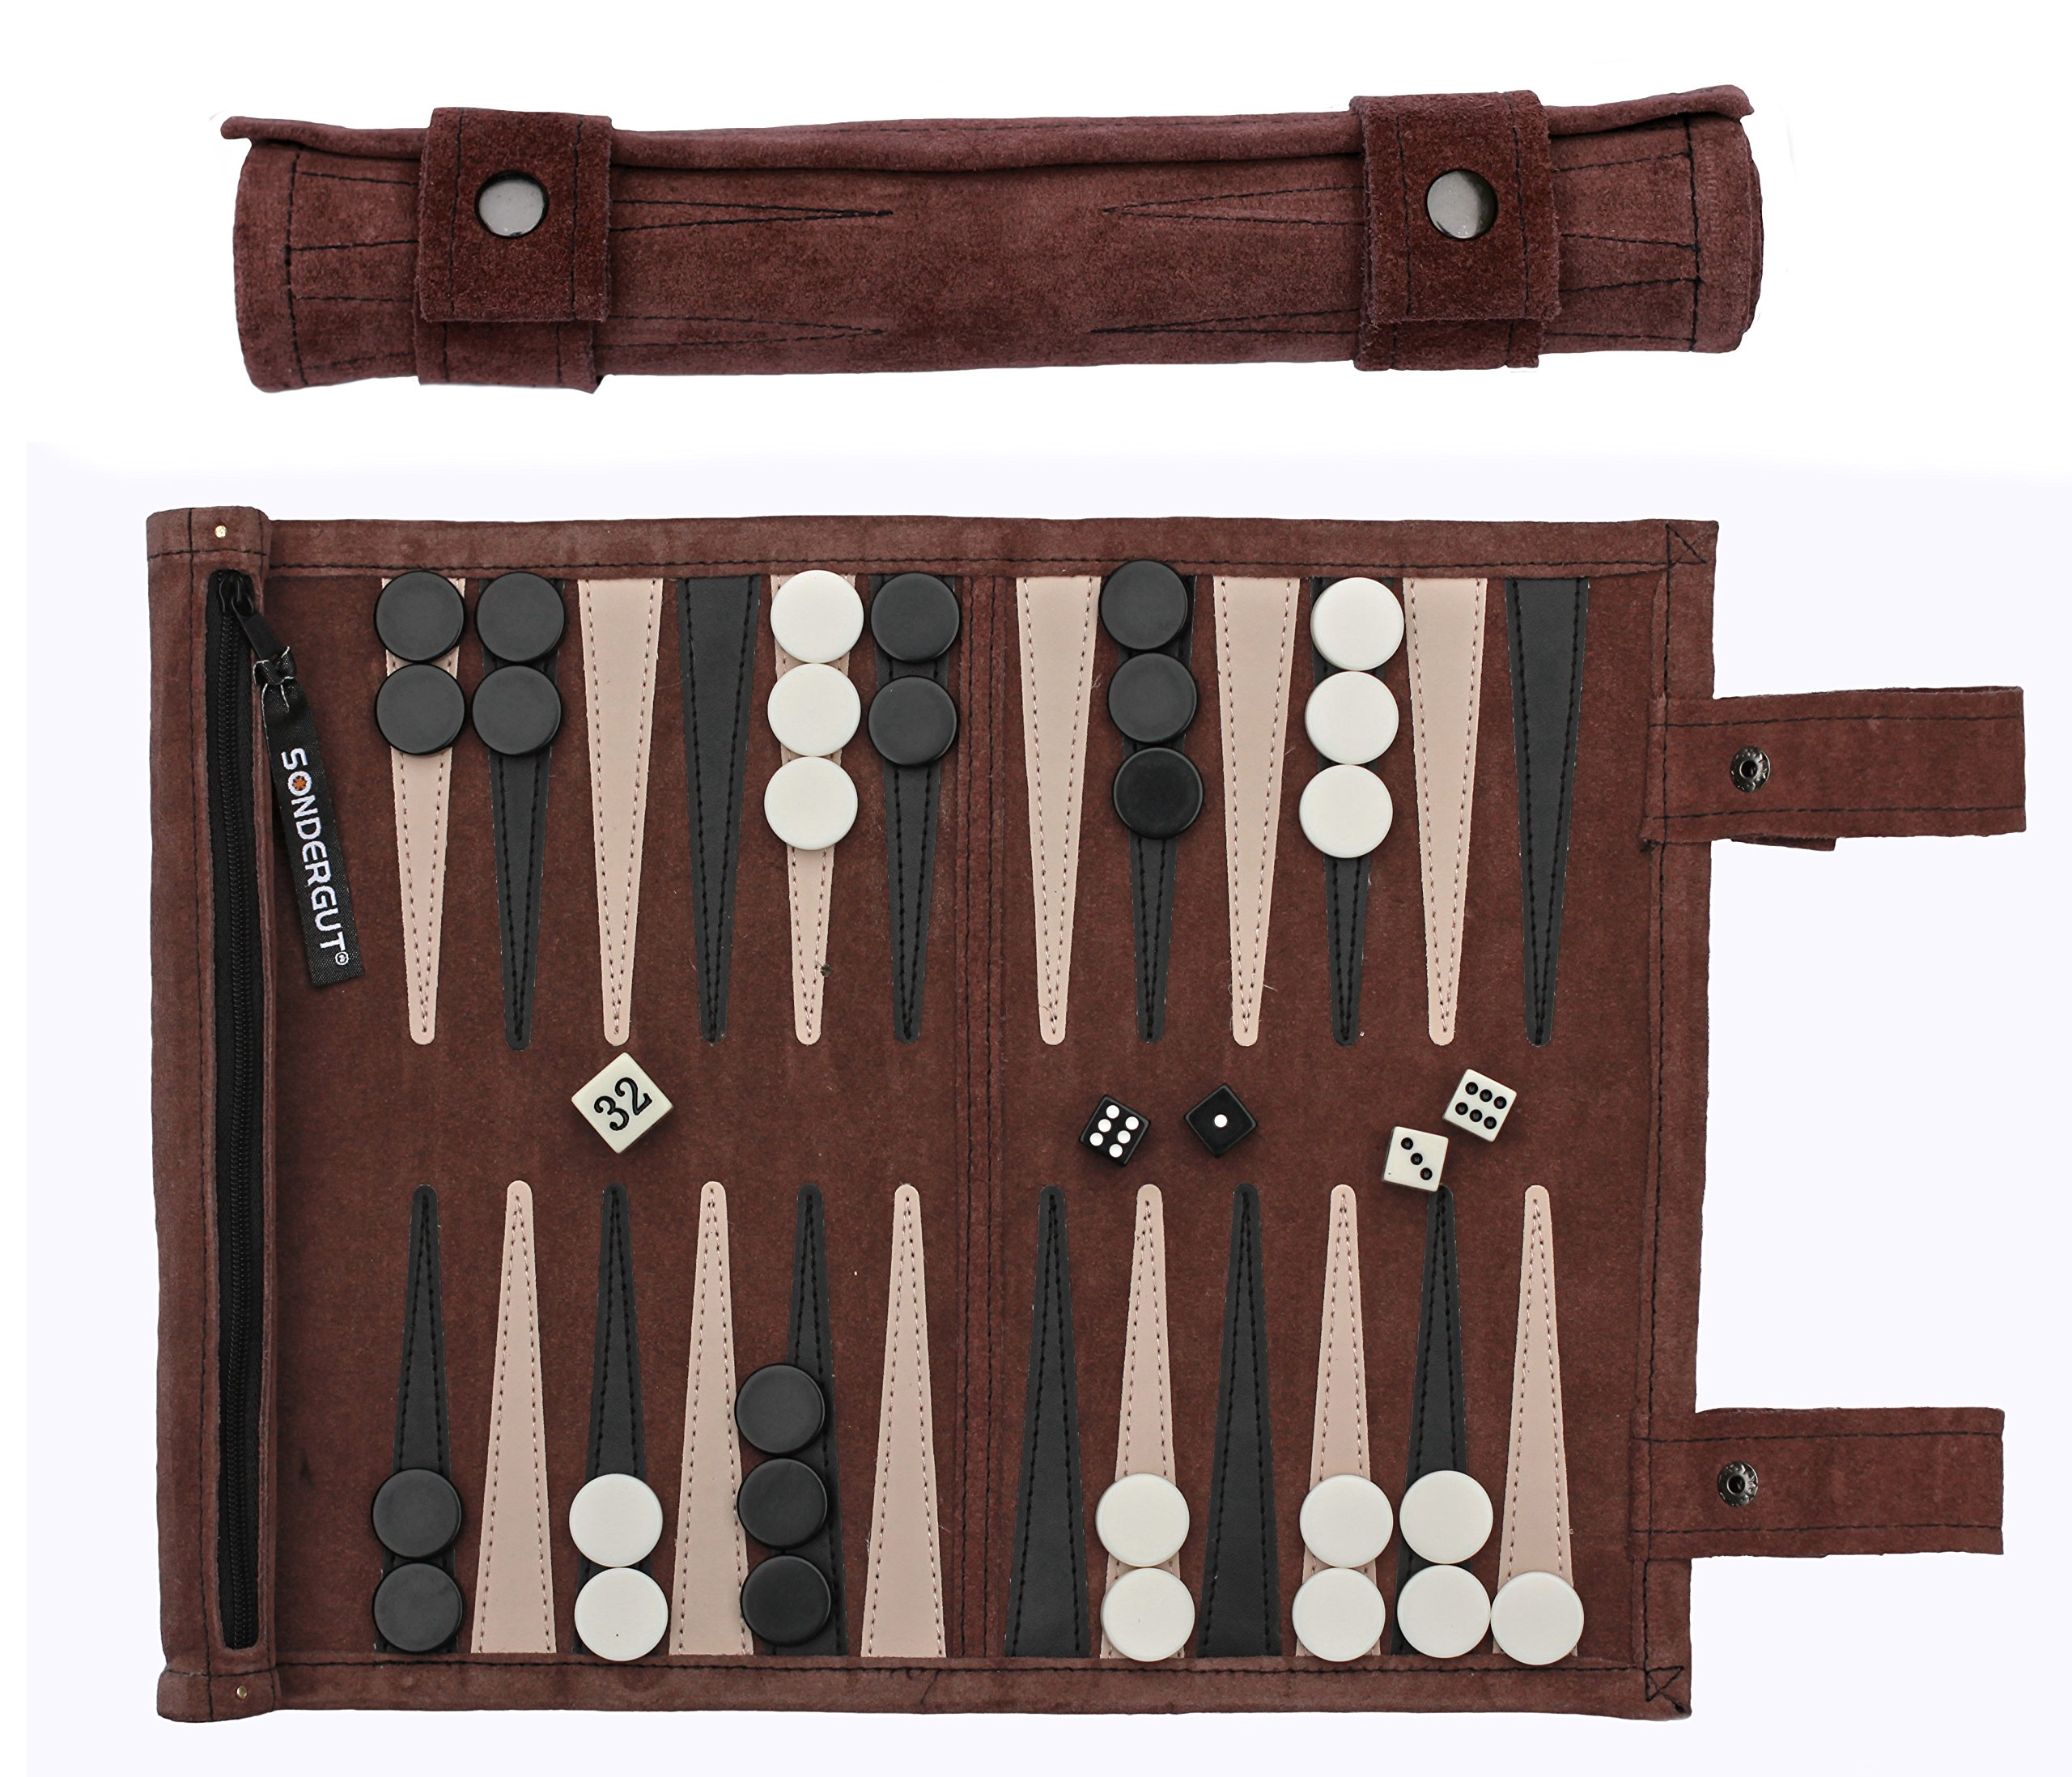 Sondergut Roll-Up Suede Backgammon Game (Color-Mocha)